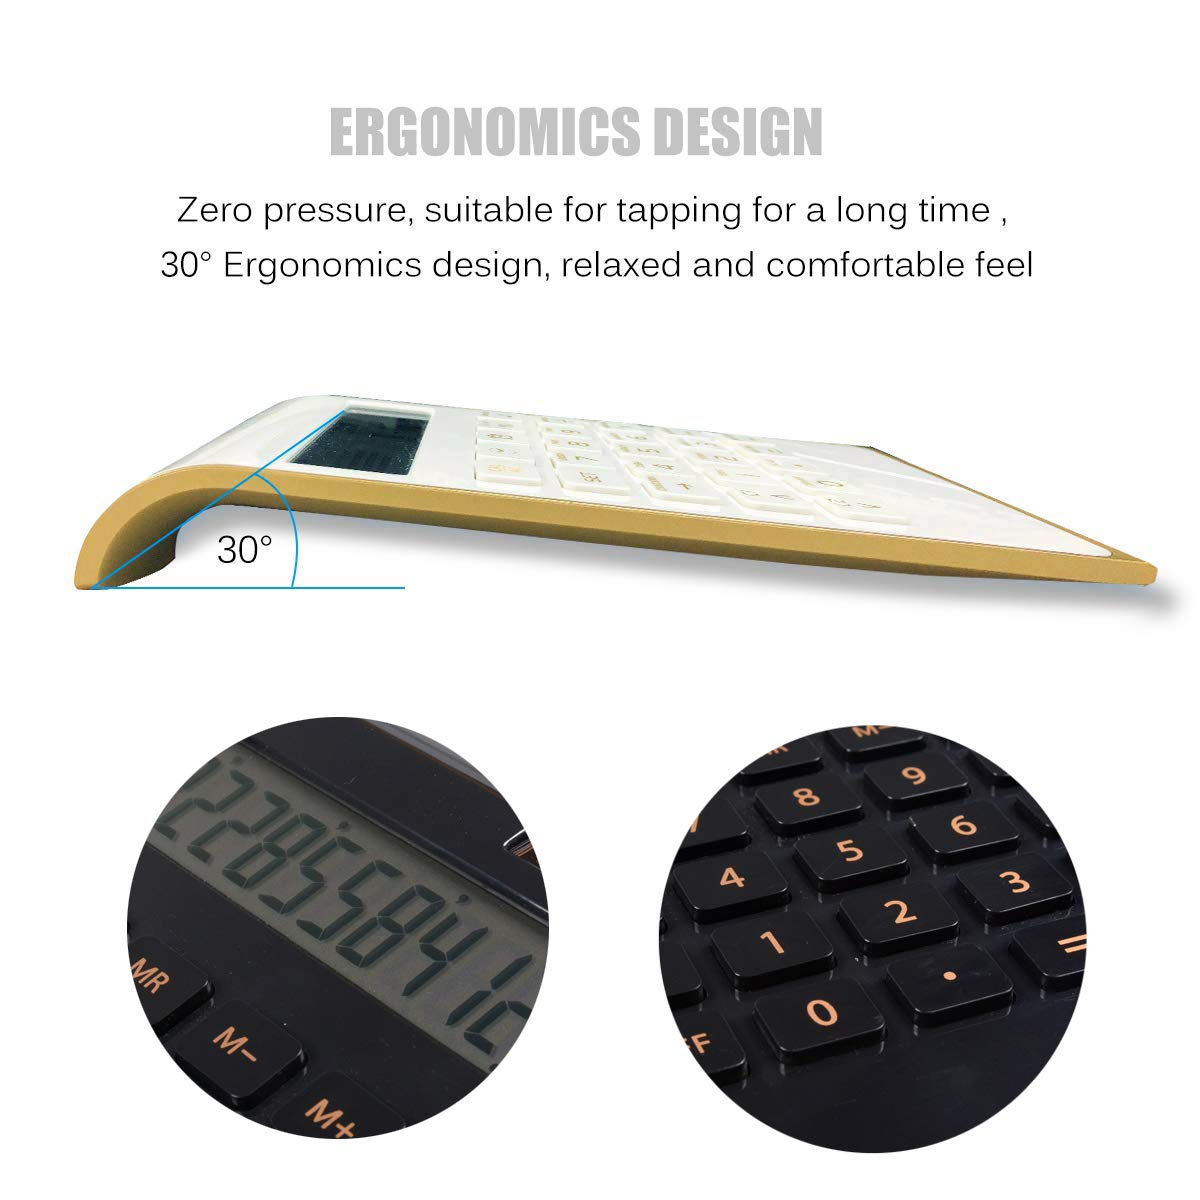 Standard Function Home and Office Electronics Desktop Calculator,Tilted LCD Display Slim Design Handheld Calculator Calculator,10 Digit Solar Dual Power Calculator Black